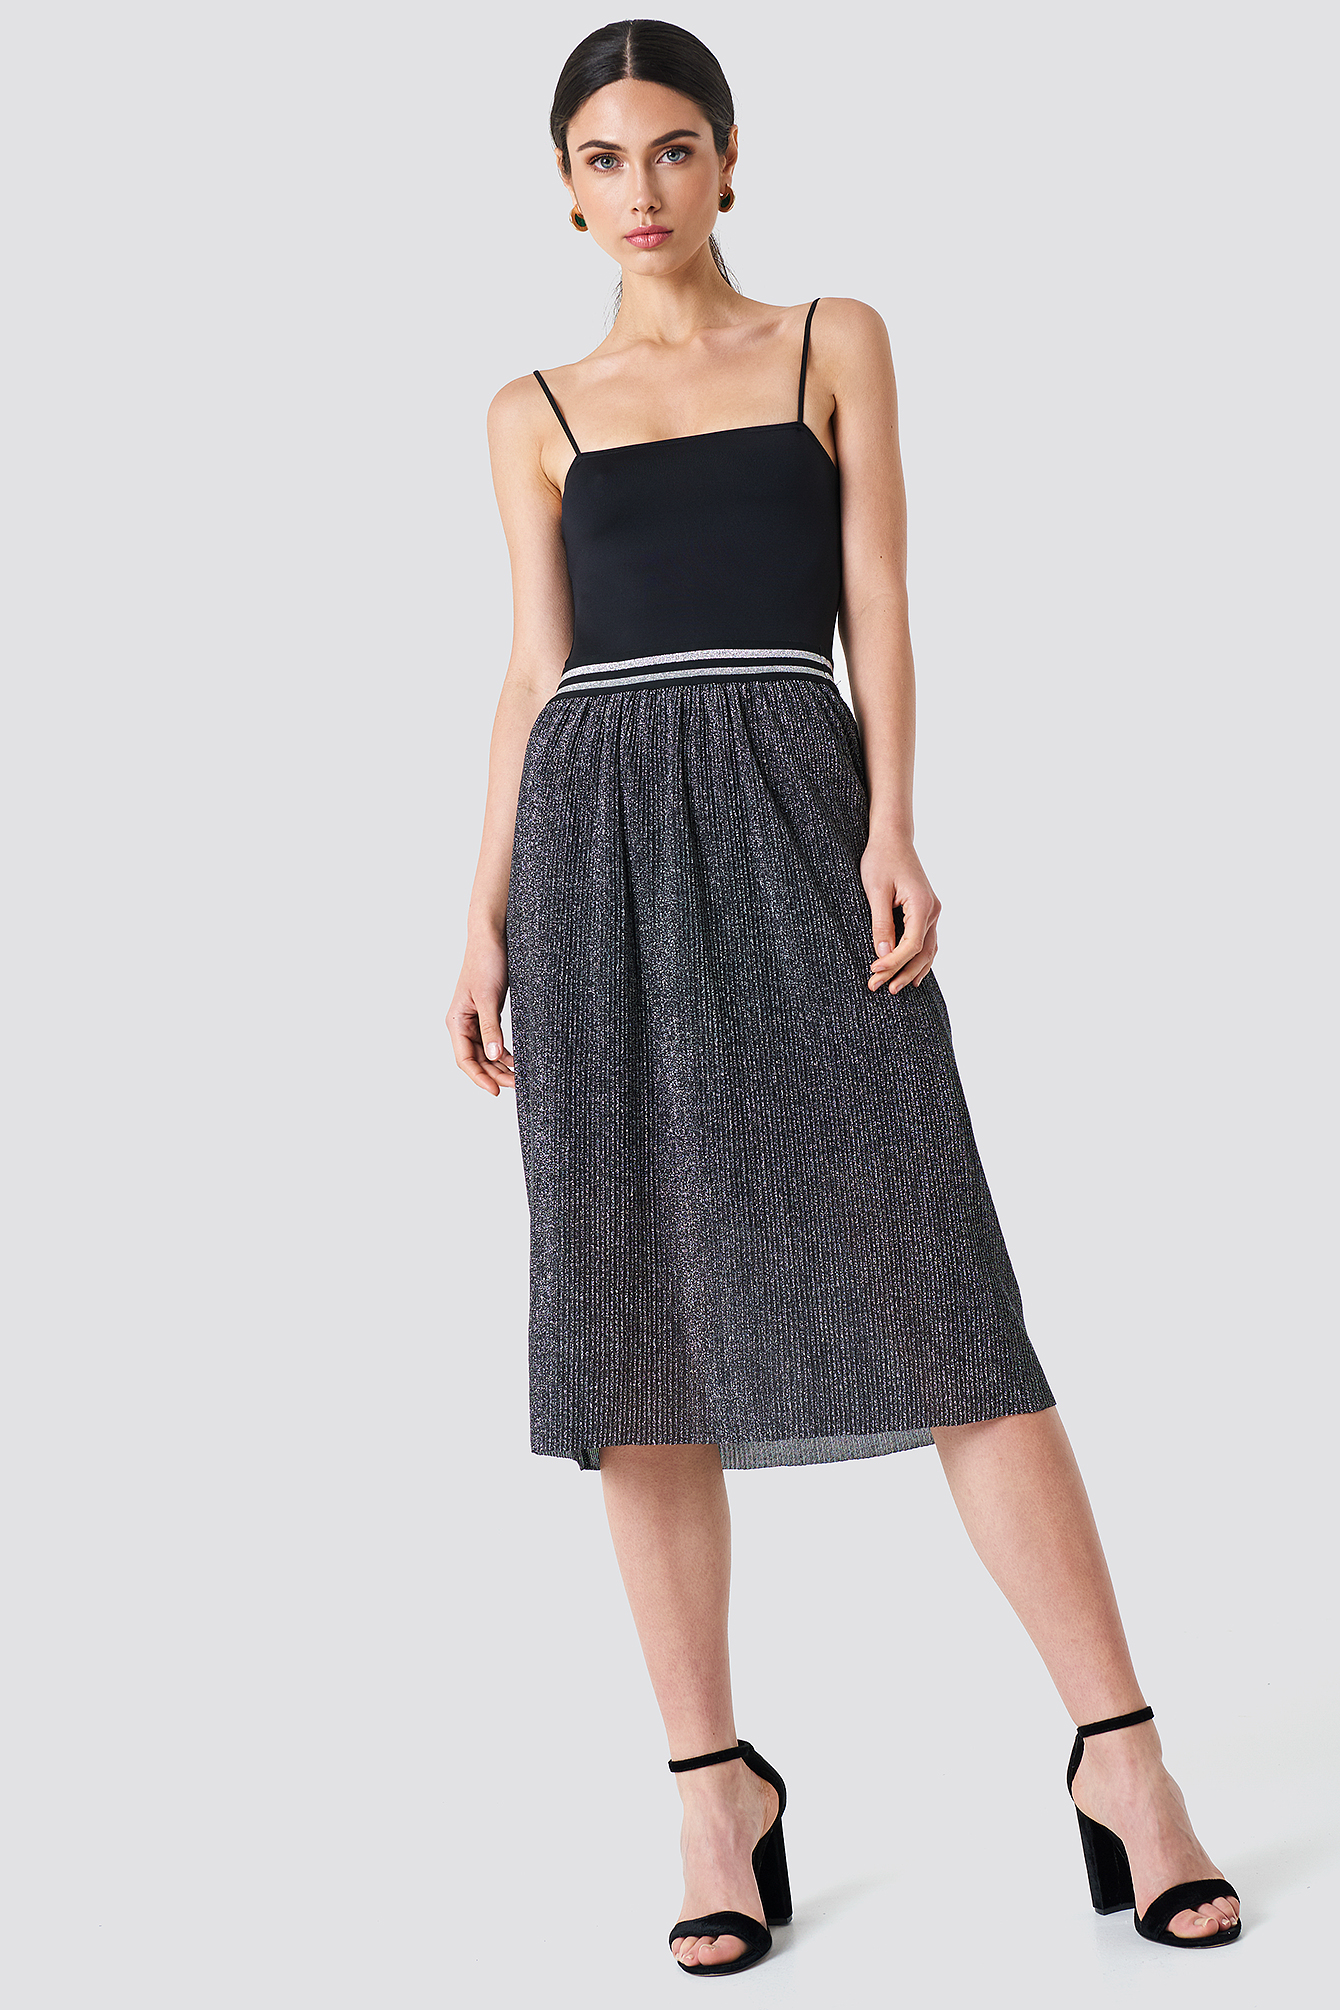 rut&circle -  Glitter Pleat Skirt - Grey,Silver